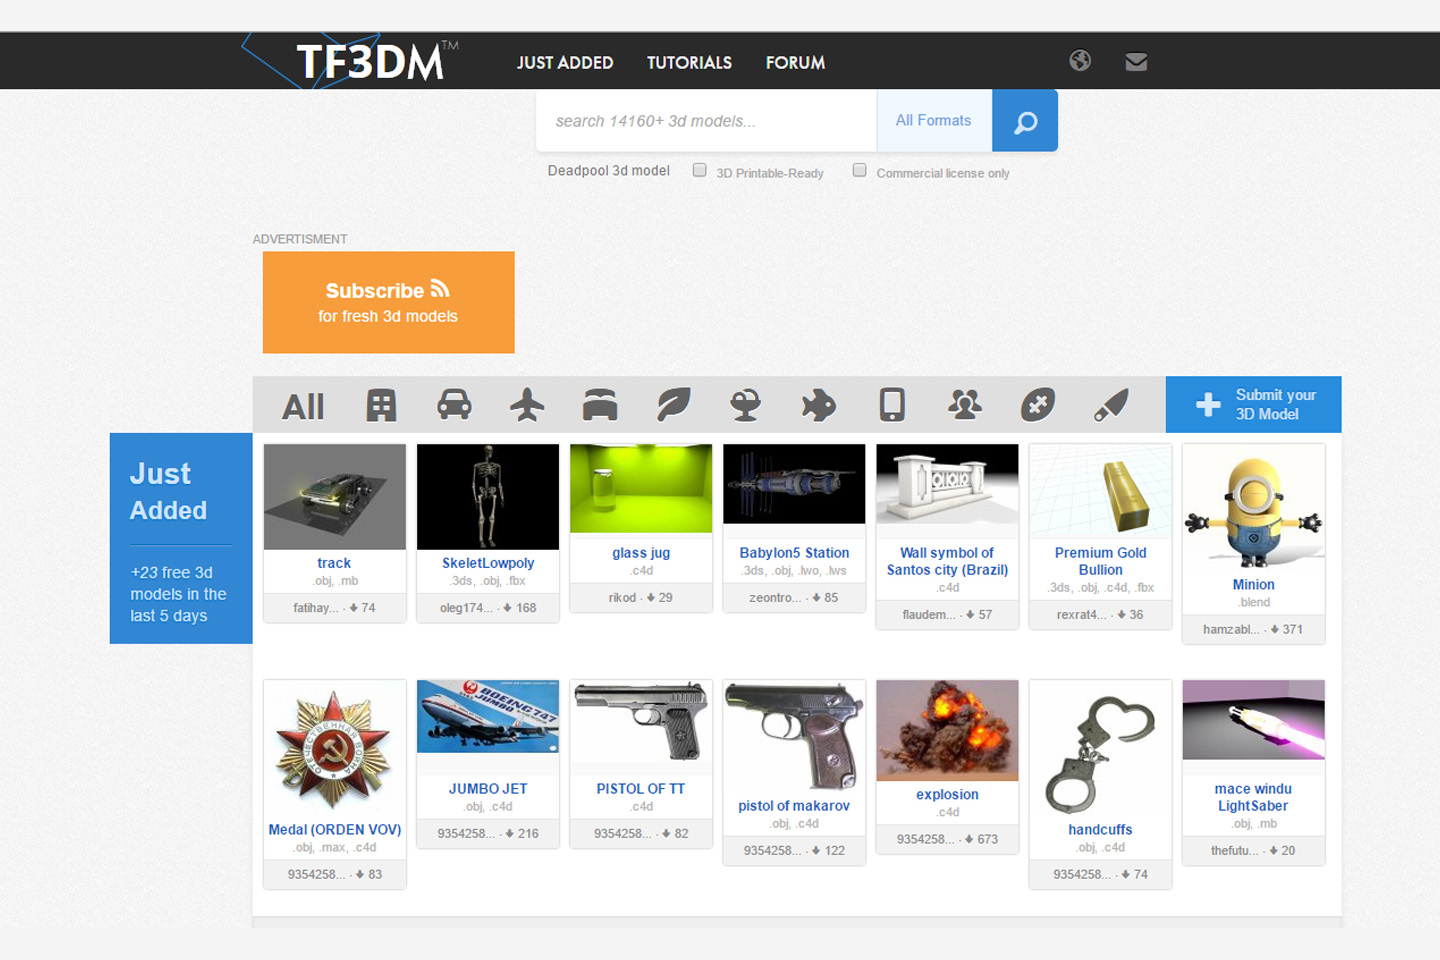 TR3DM.com free 3d models website